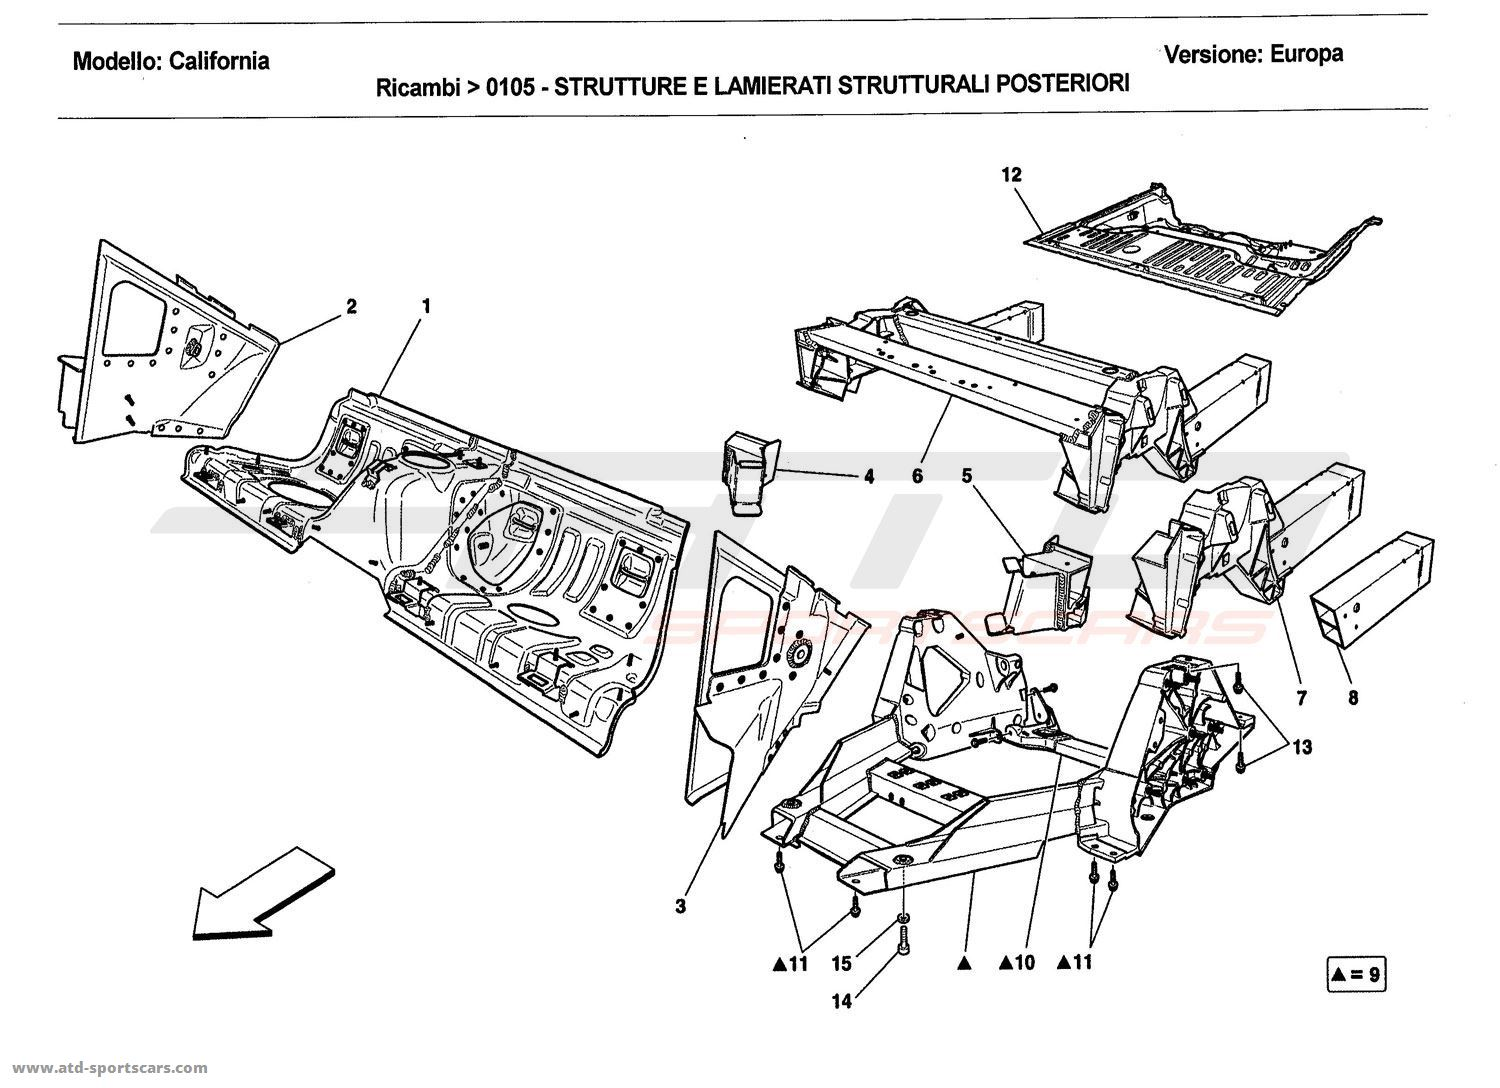 Ferrari California 2011 REAR STRUCTURES AND CHASSIS BOX